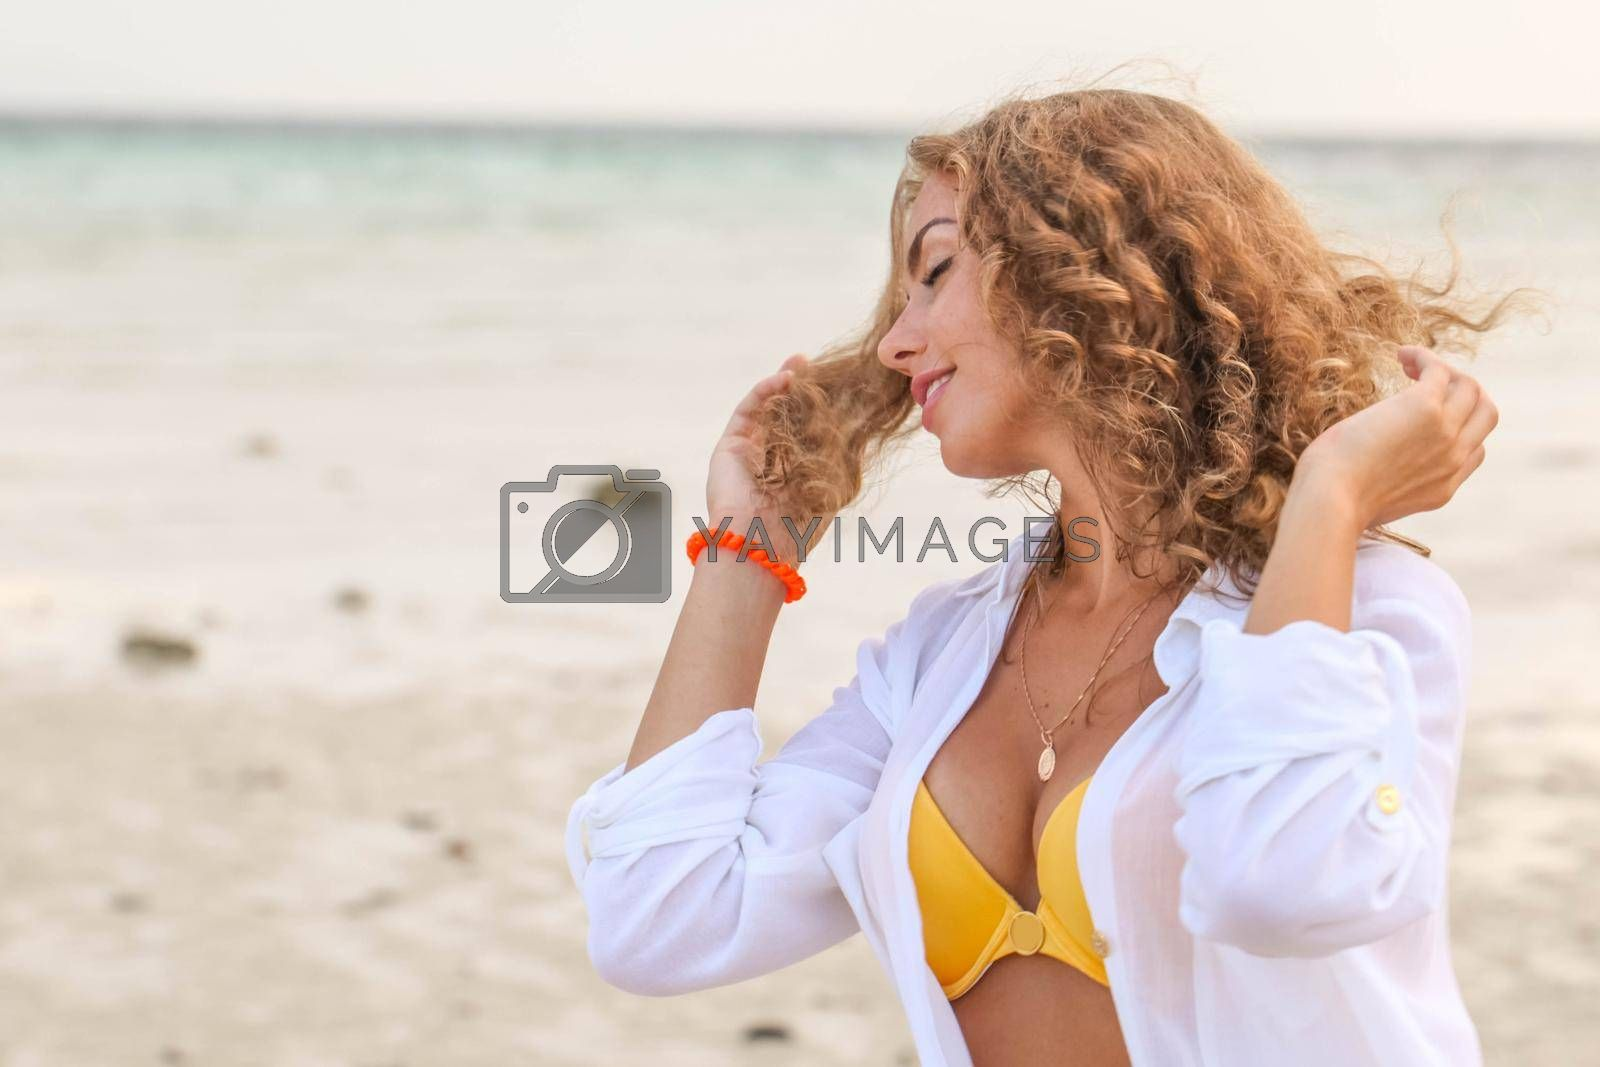 Royalty free image of Woman enjoy vacation on beach by Yellowj